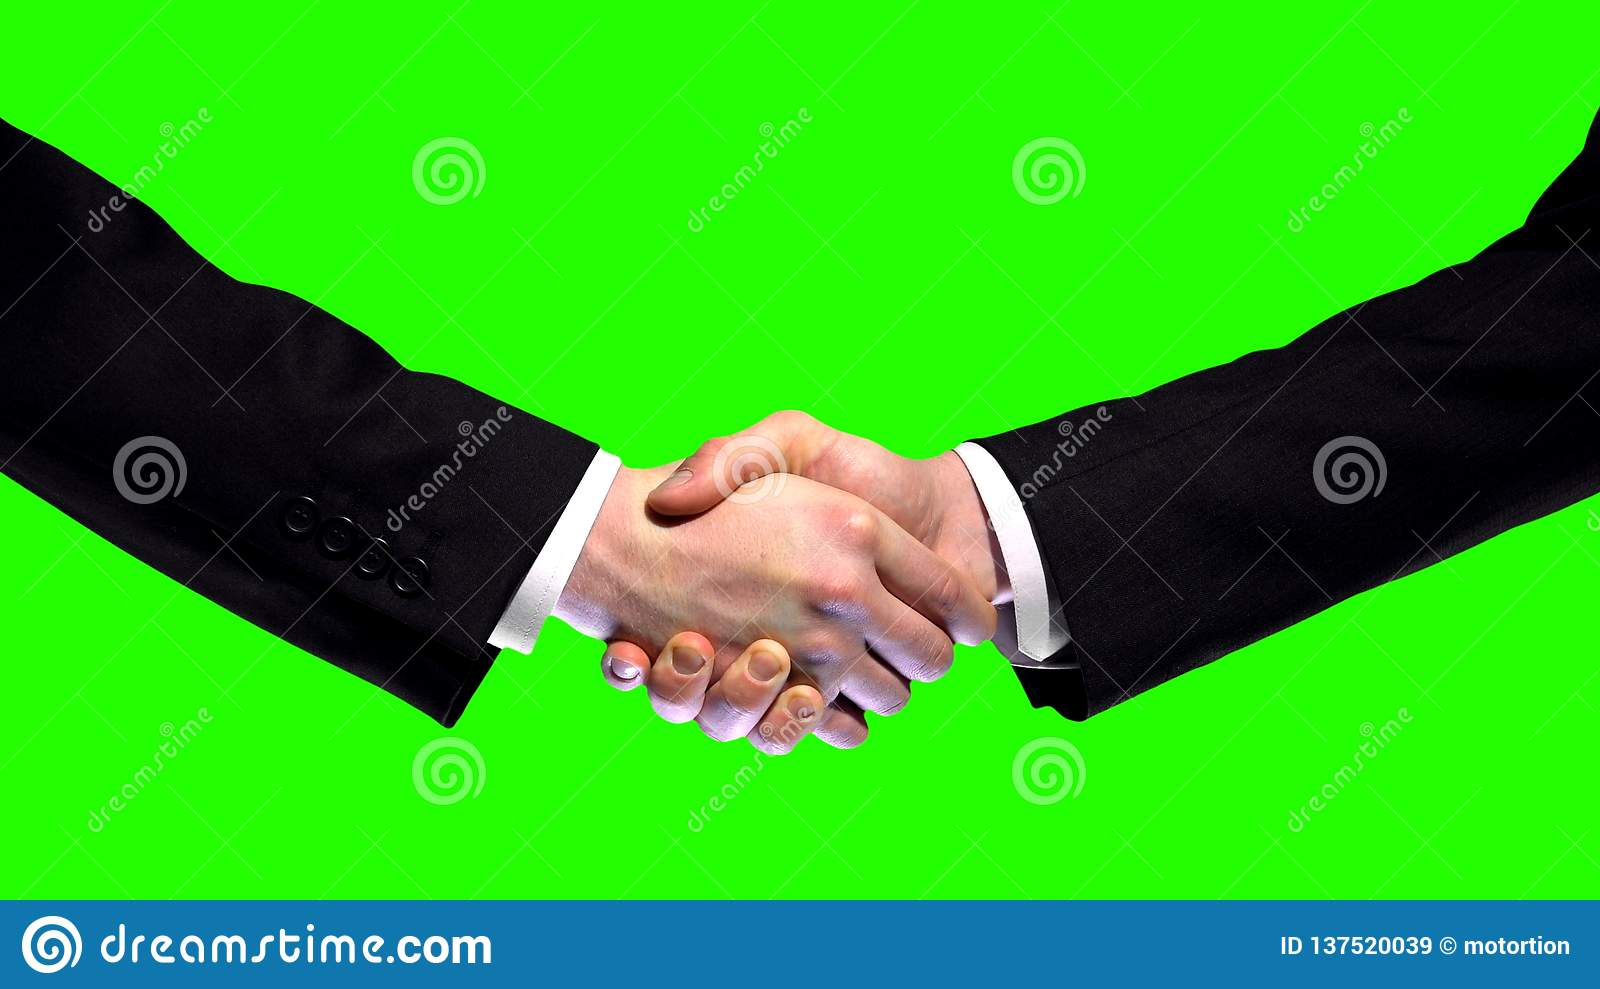 Business handshake on green screen background, partnership trust, respect sign